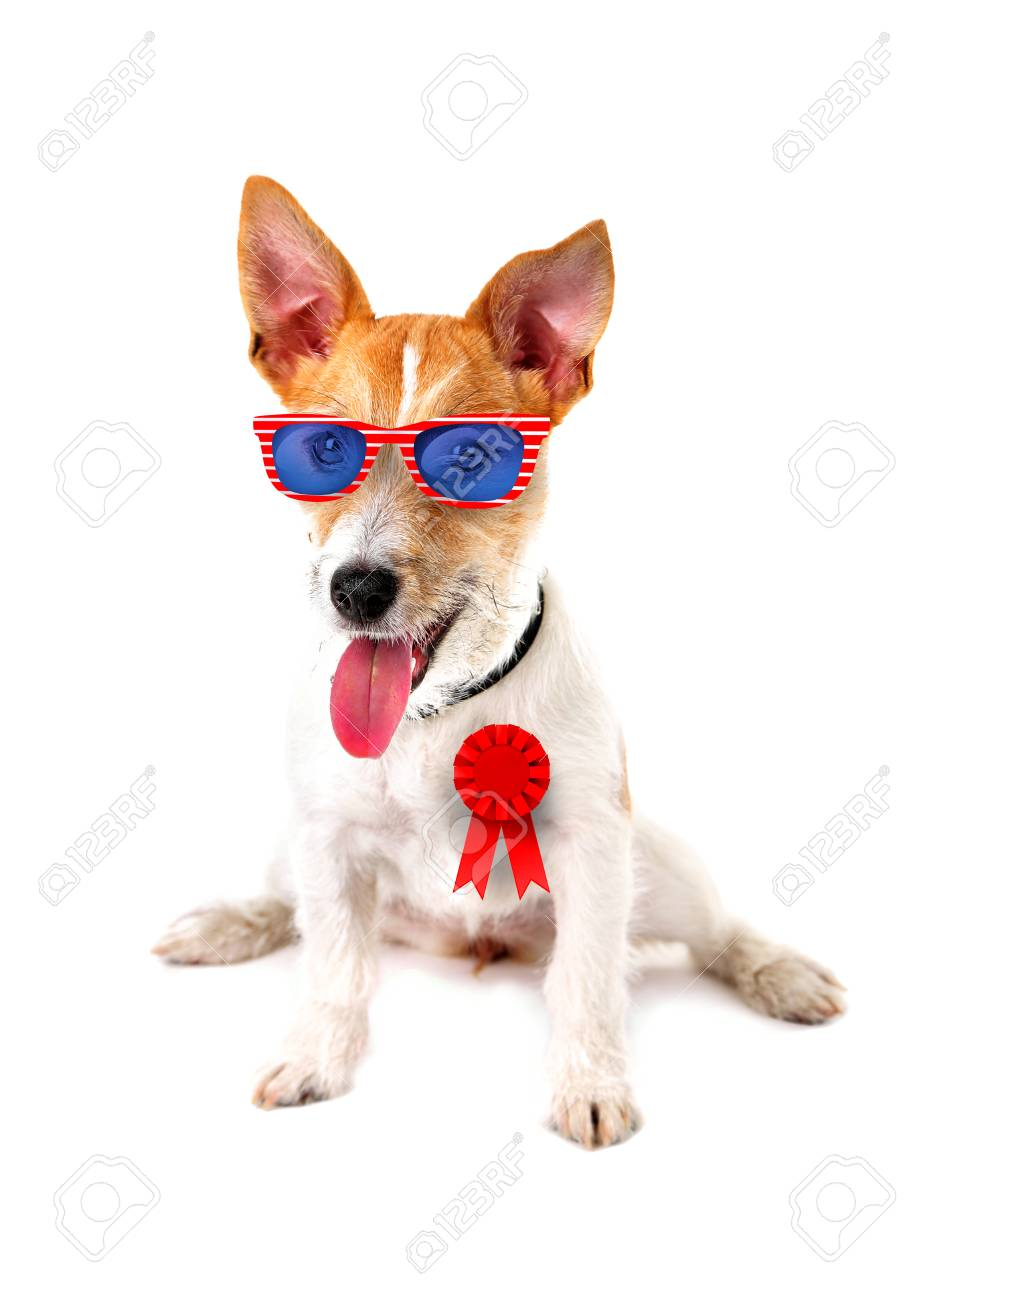 Good Ribbon Bow Adorable Dog - 79516828-cute-dog-with-sunglasses-and-award-ribbon-on-white-background-usa-holiday-concept-  Graphic_216745  .jpg